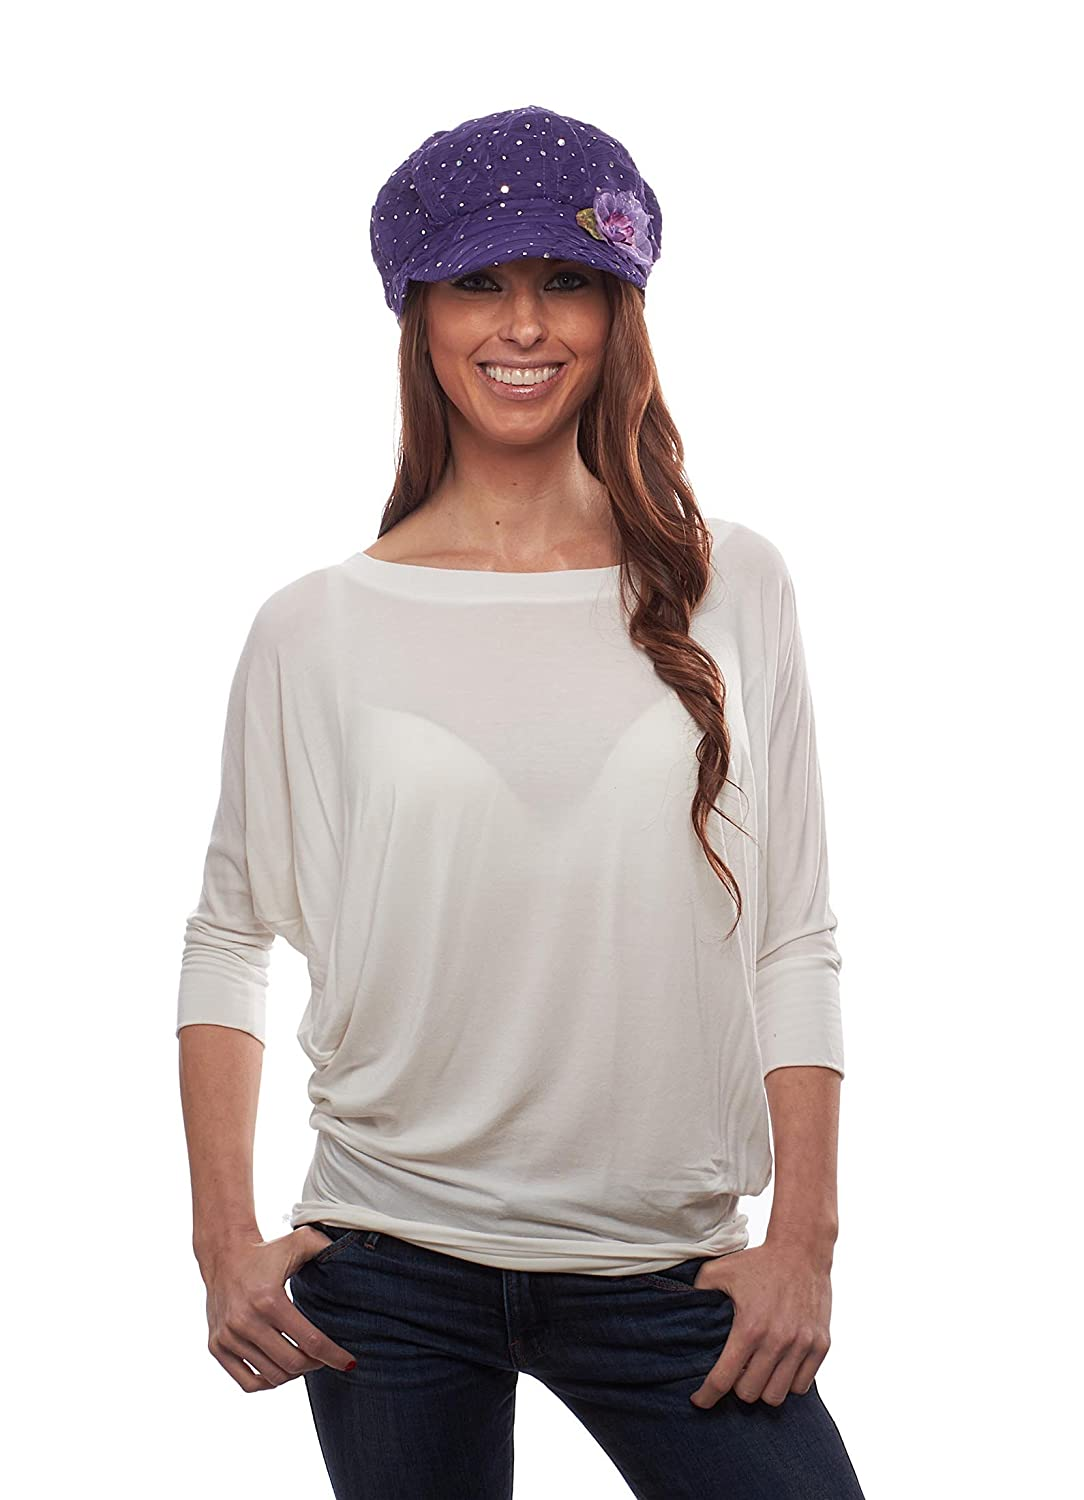 Glitter Sequin Newsboy Cap with Sparkle Flower, Purple with Flowers Greatlookz Fashion 5HRT71485A-C65U